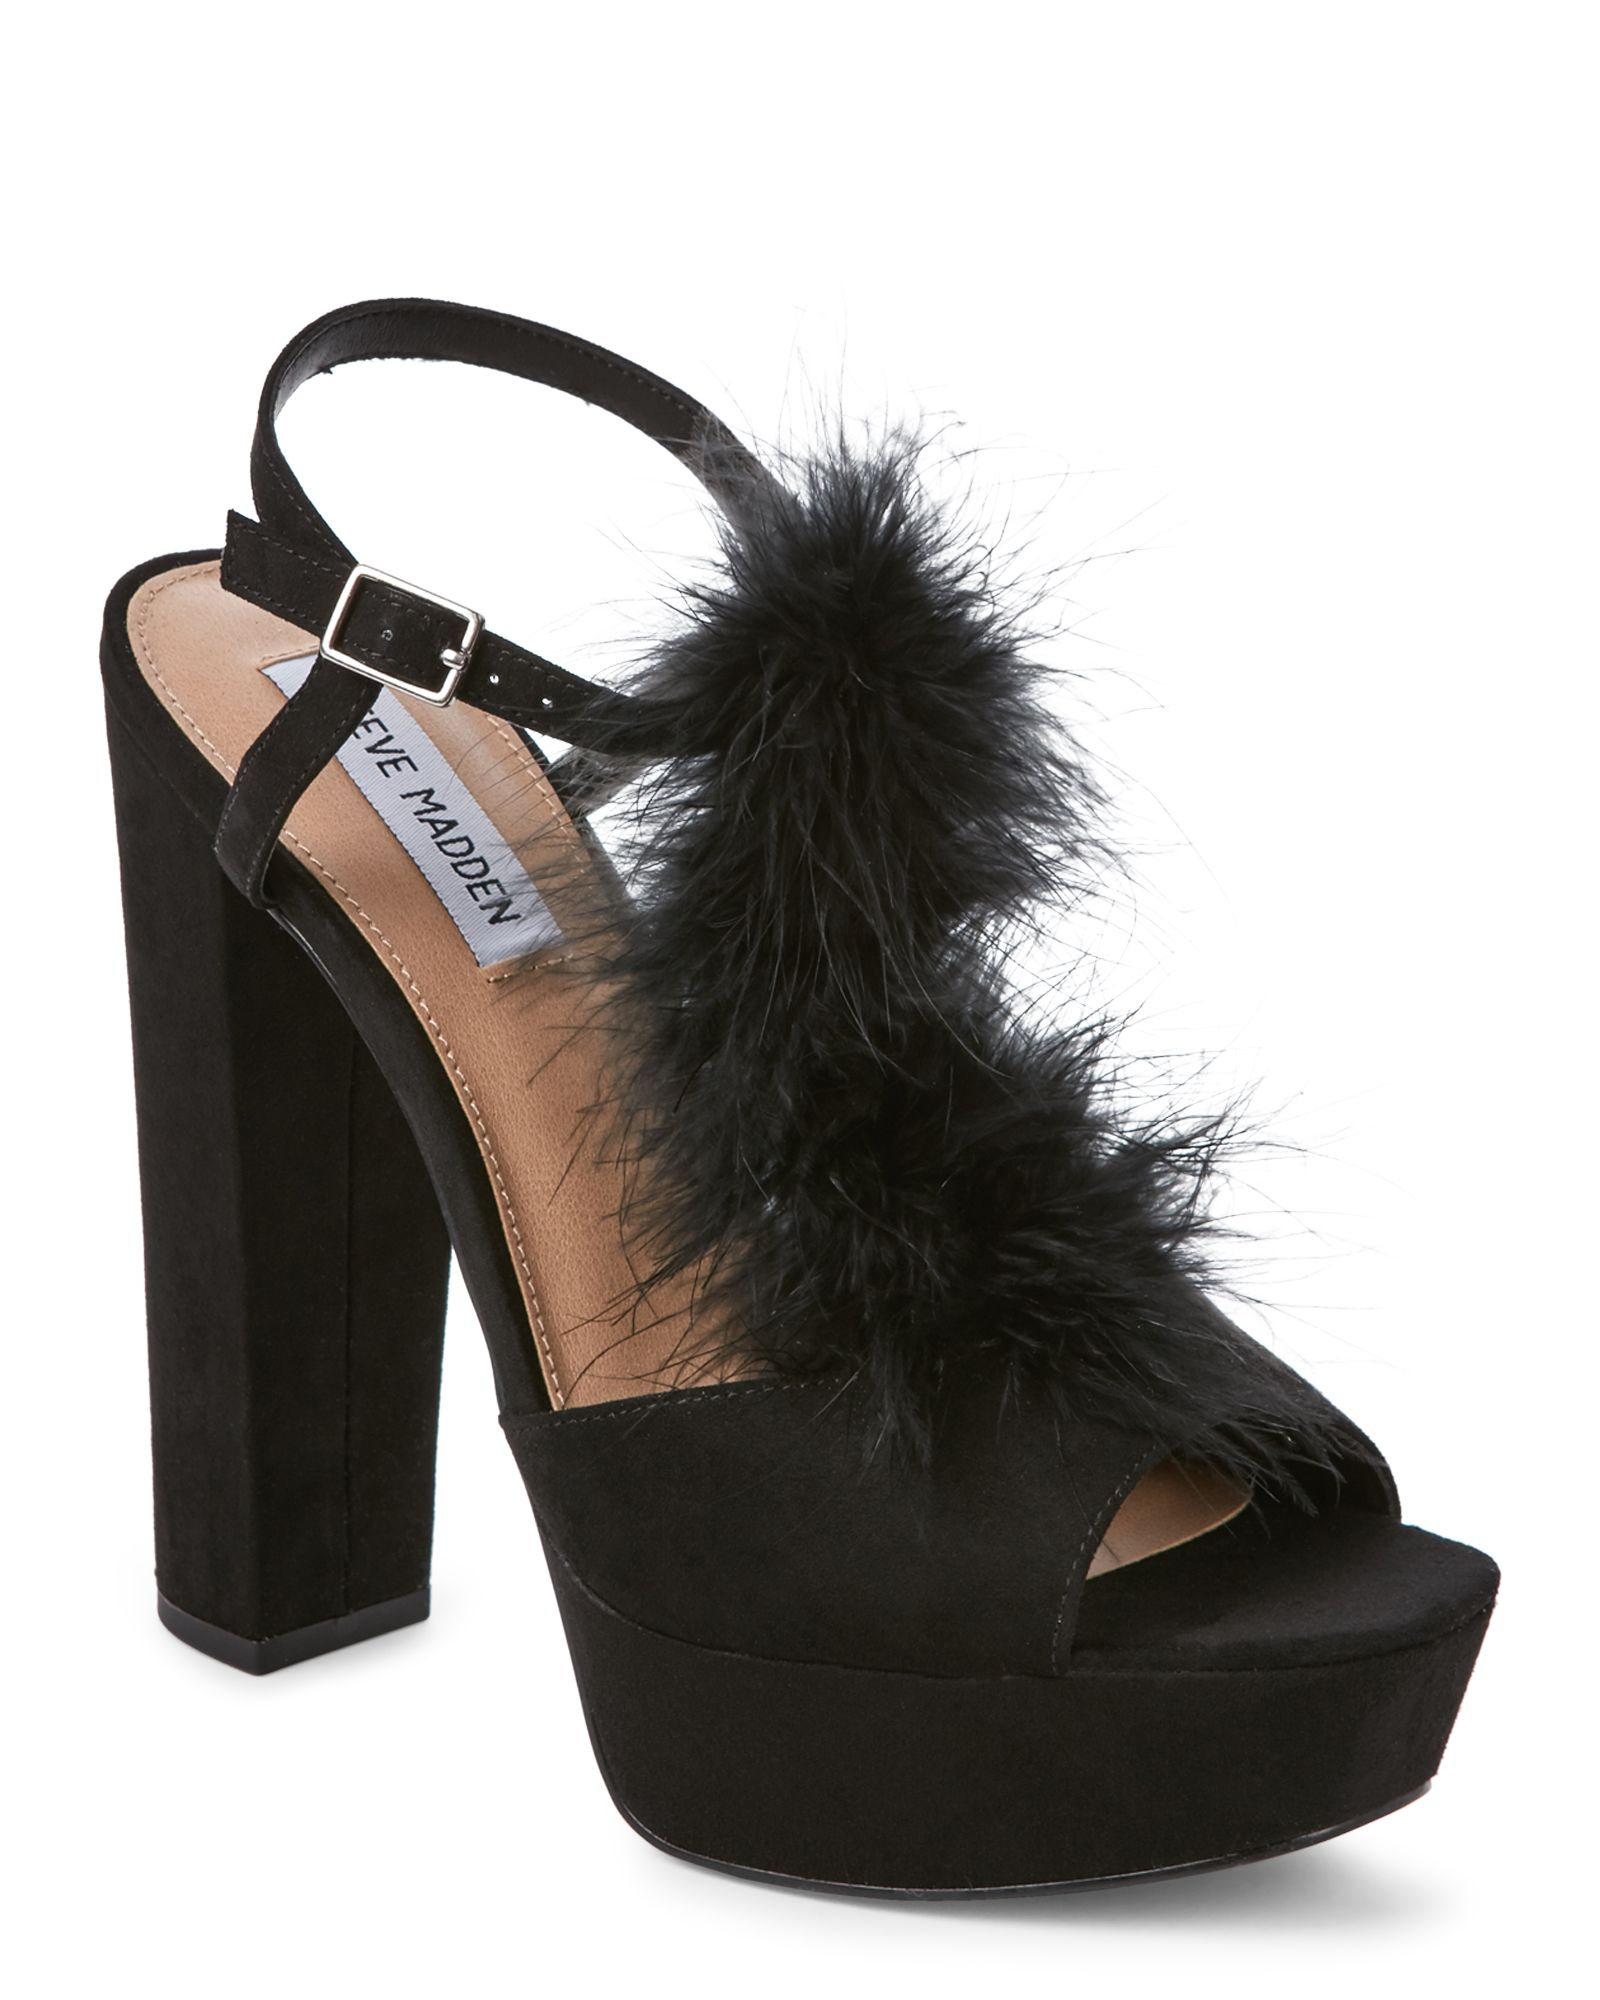 a46302ddd86 Steve Madden Black Tricia Feather Platform Block Heel Sandals ...